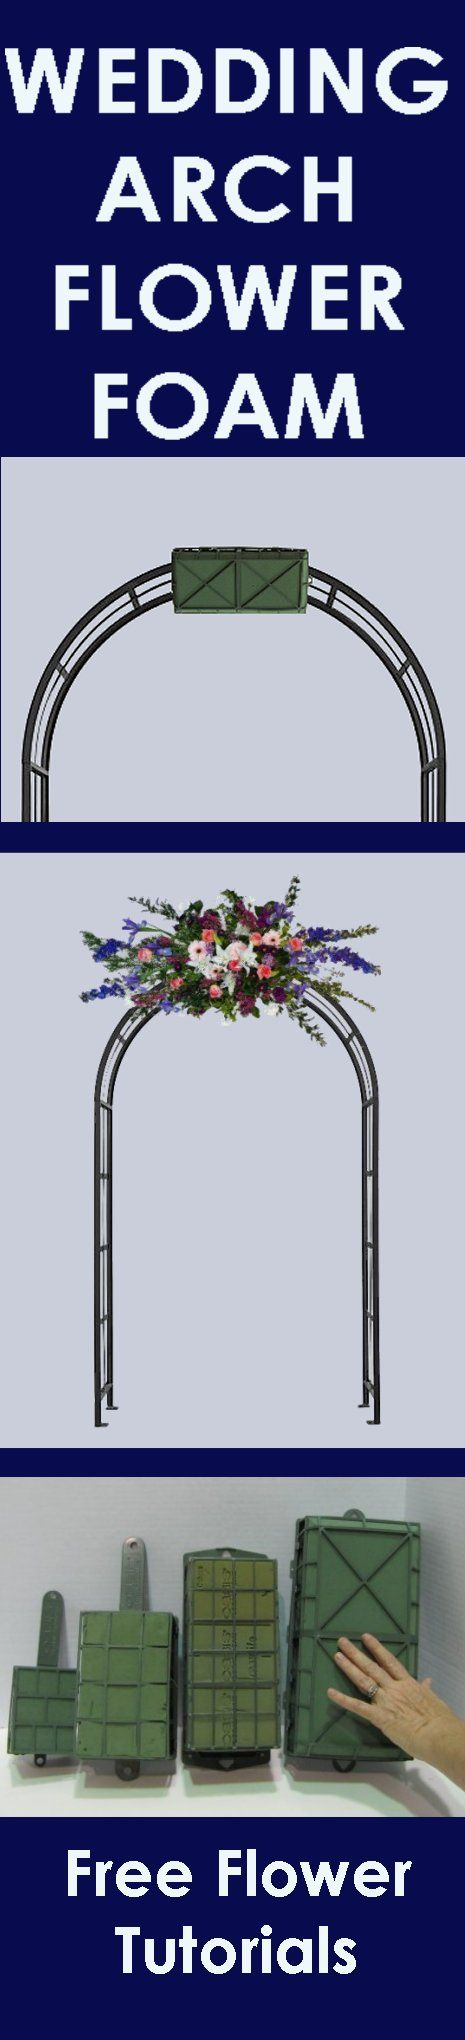 Wedding flower arch easy step by step flower tutorials learn how wedding flower arch easy step by step flower tutorials learn how to make bridal bouquets wedding corsages church decorations and wedding table junglespirit Image collections